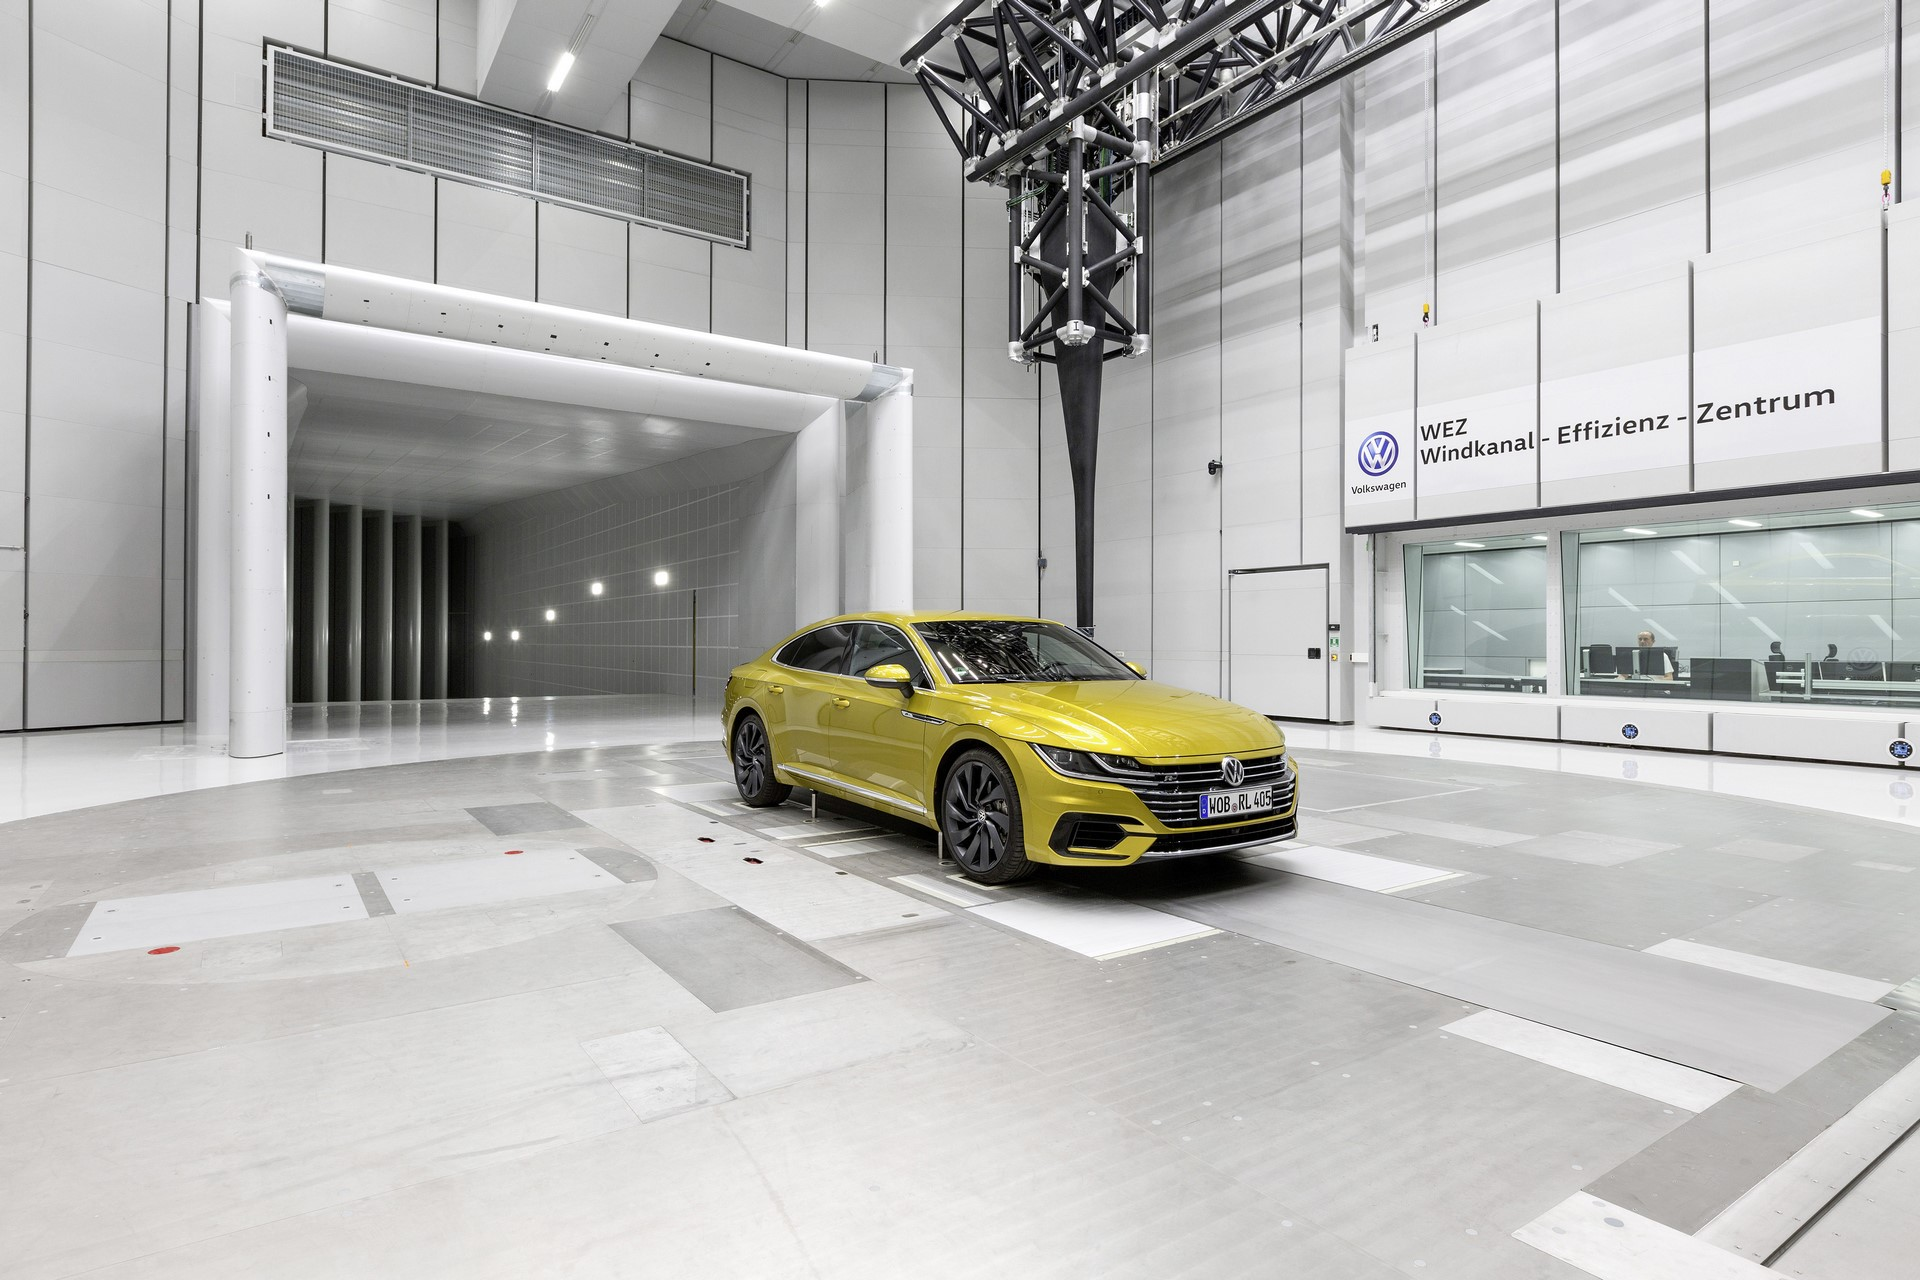 Volkswagen Wind Tunnel Efficiency Center (11)